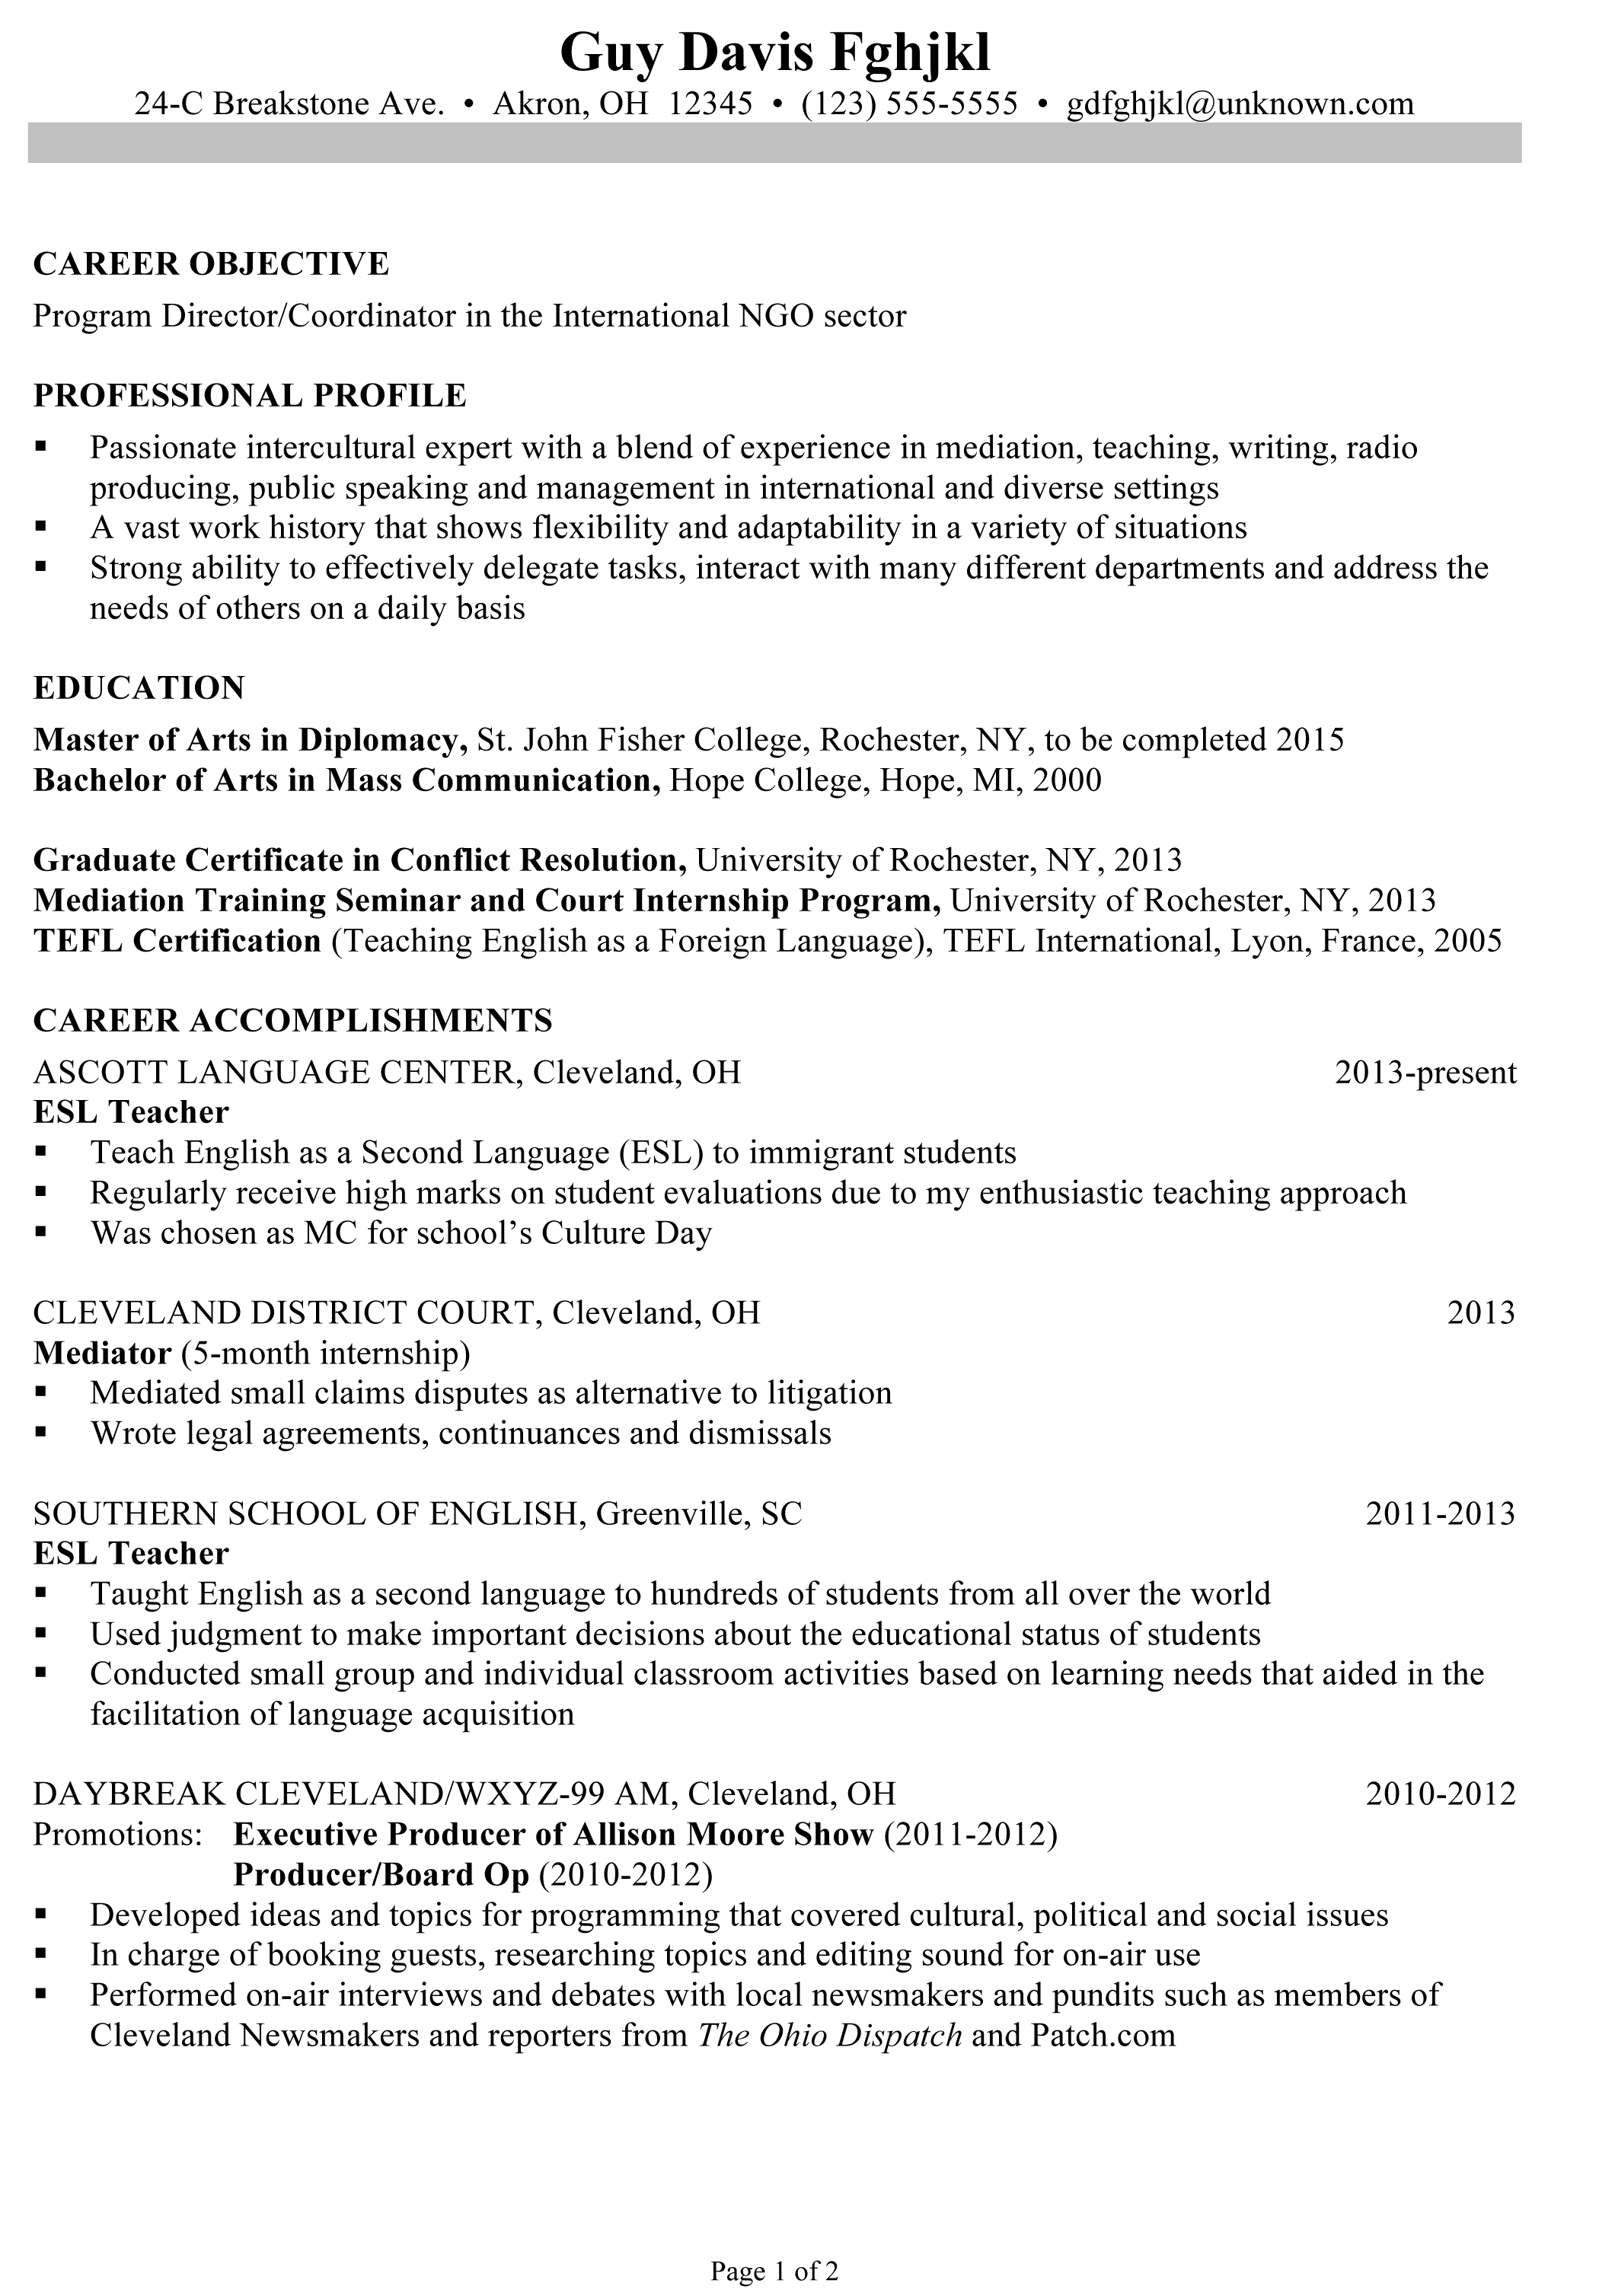 Chronological Resume Sample Program Director Coordinator